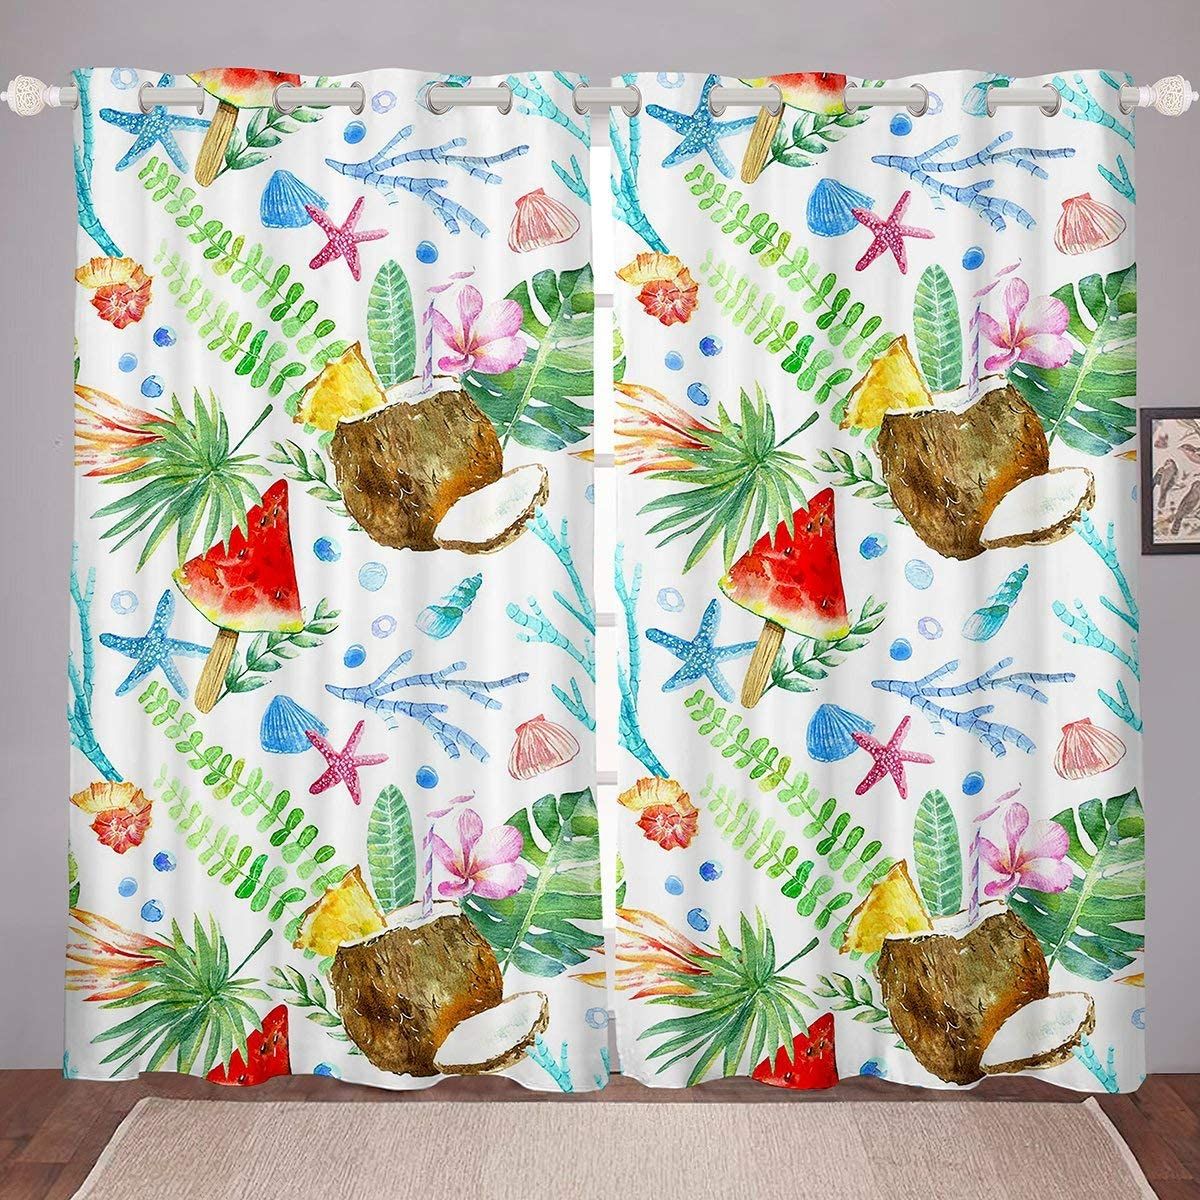 "Erosebridal Palm Leaf Curtains Kids Girls Starfish Ocean Life Window Curtain Panels, Watermelon Window Drapes for Children Boys Teens Coconut Fruit Colorful Window Treatment Decorative Room 84""X63"""